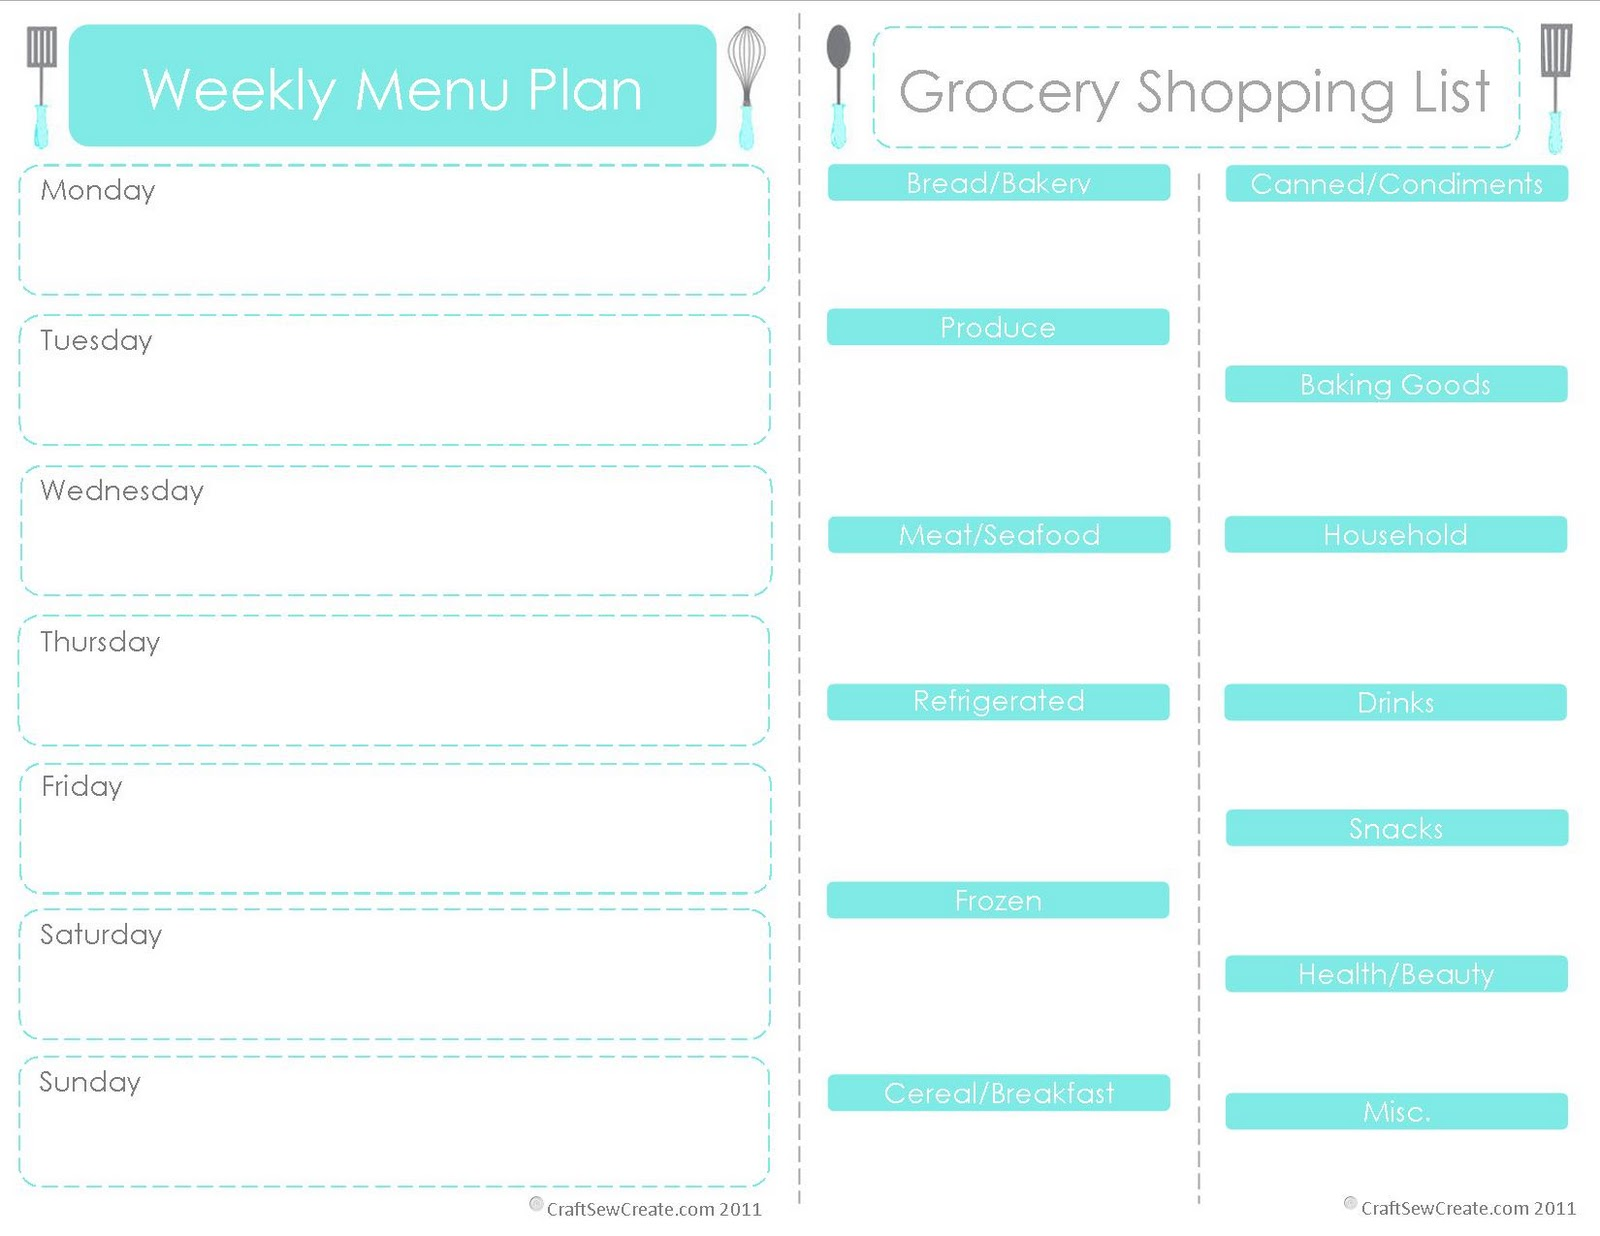 It Prints On One Page, So You Can Fold It In Half And Take It To The Store.  That Way You Can Cross Check And Remember What Your Meal Plan Was (Why